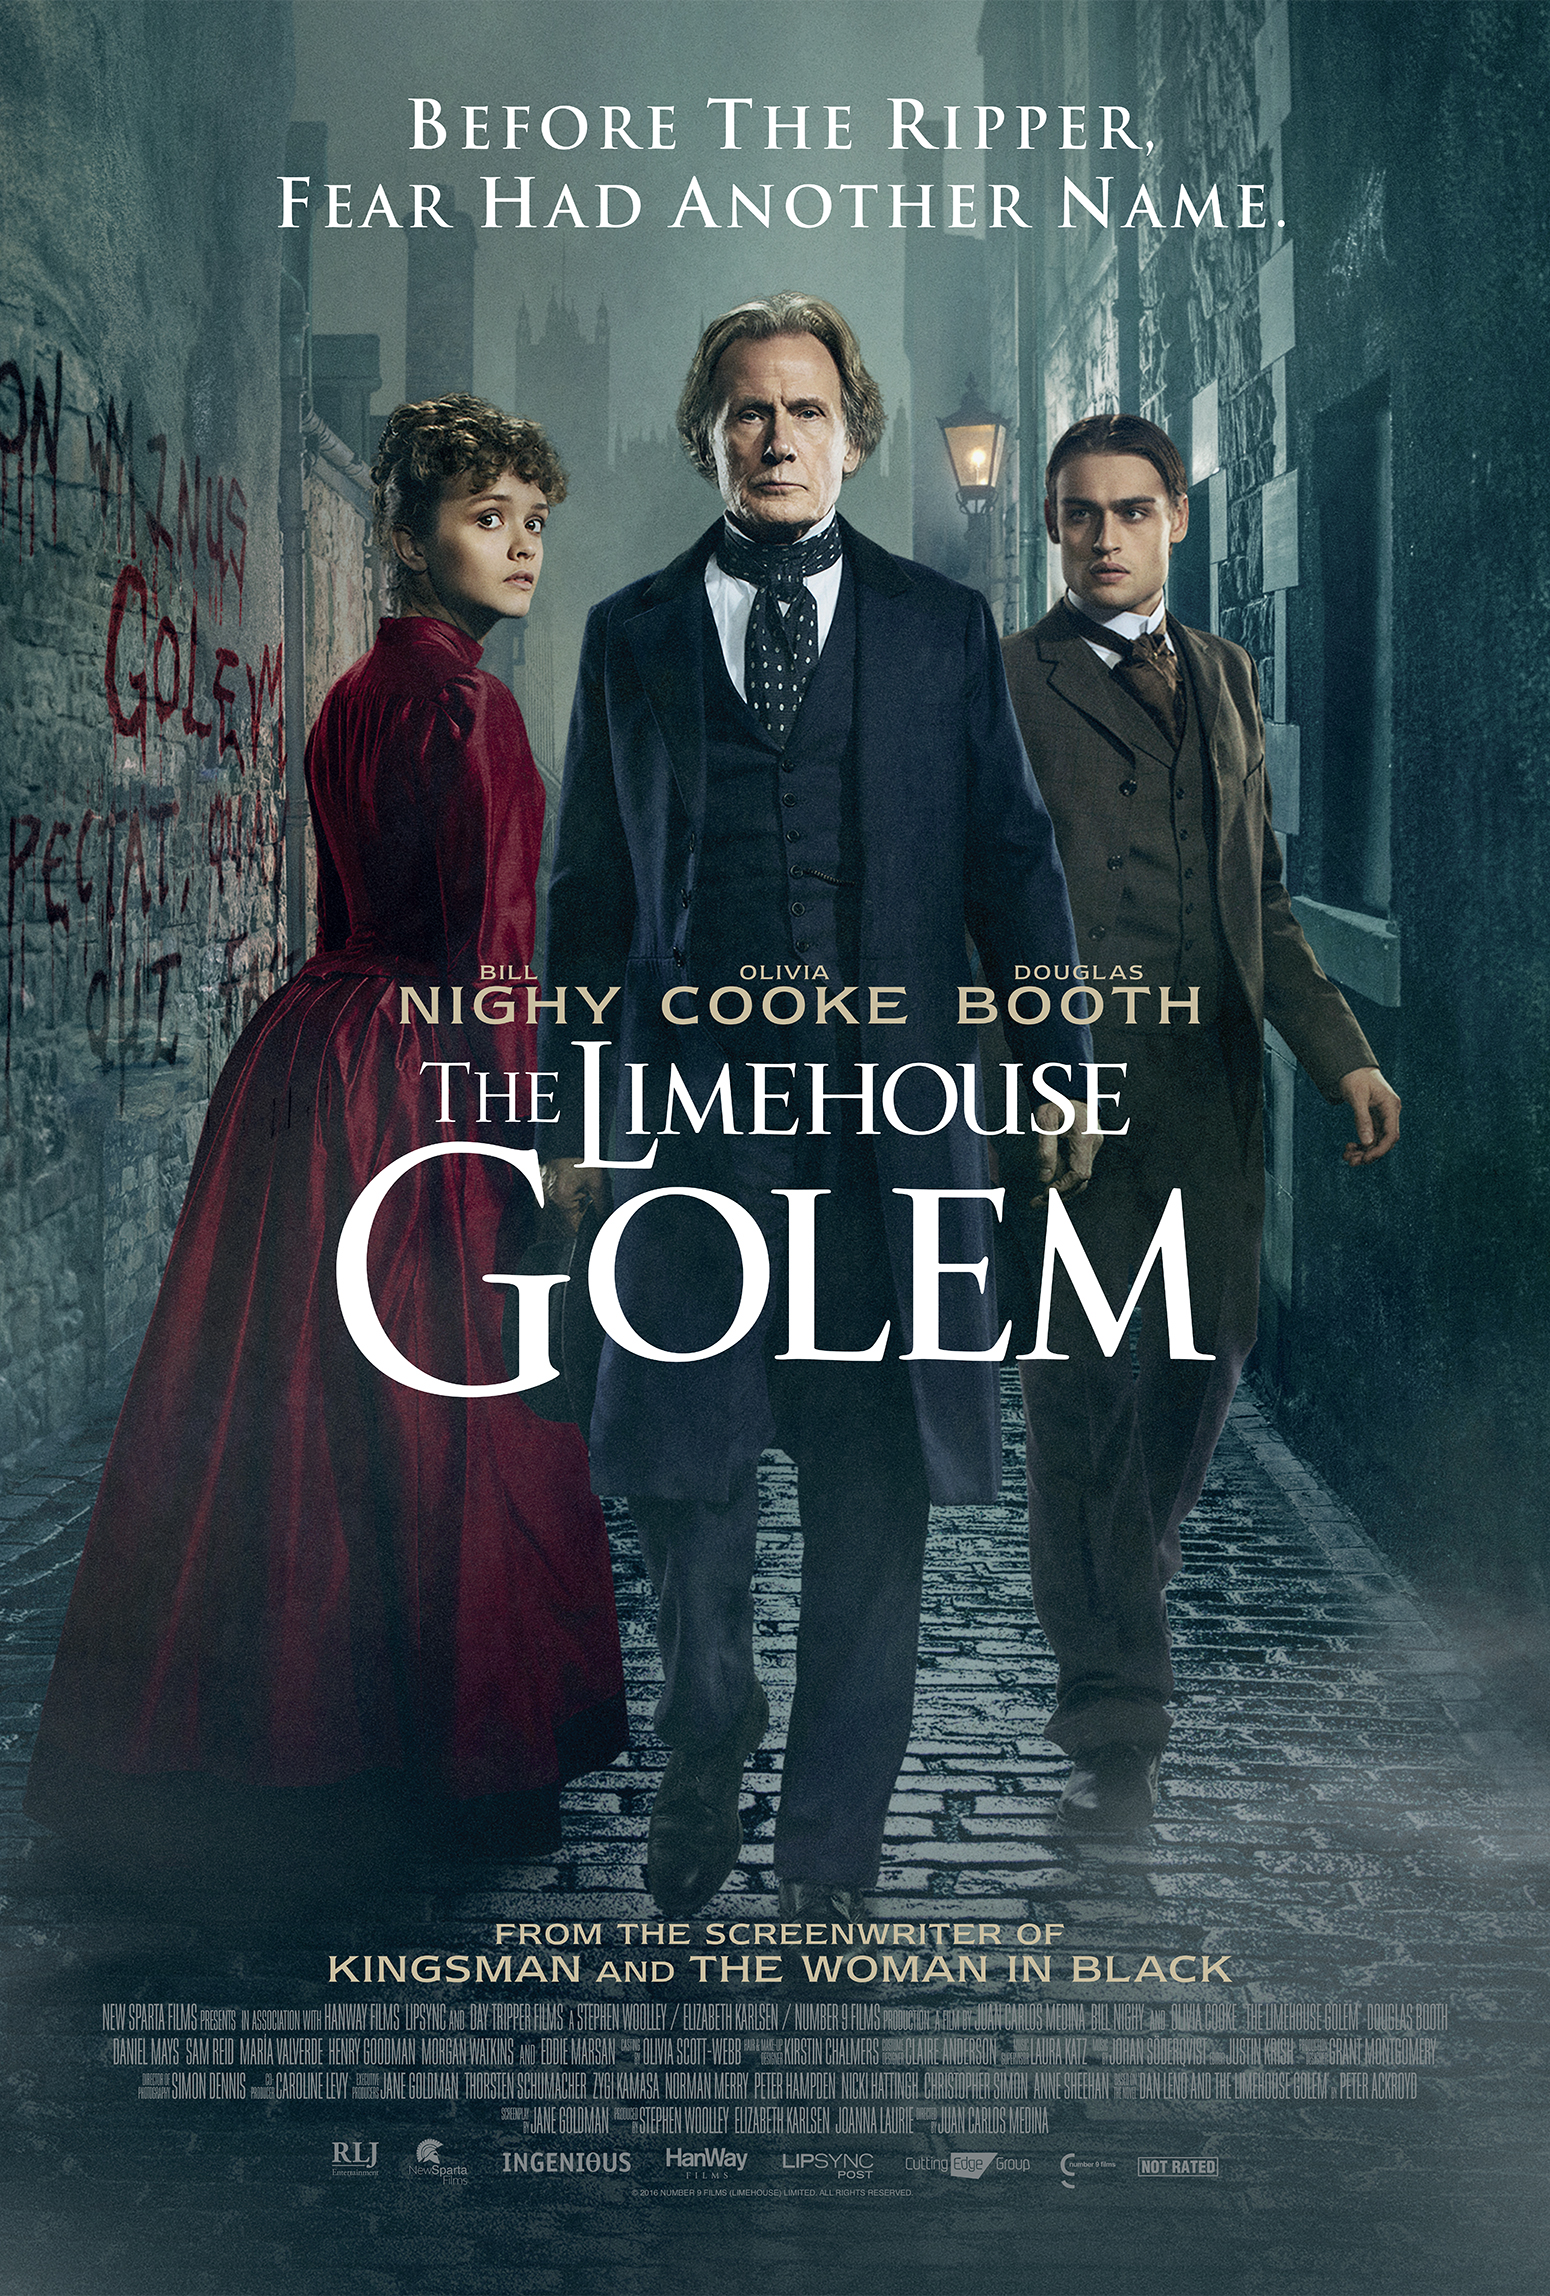 The Limehouse Golem (2016) - Directed by: Juan Carlos MedinaStarring: Olivia Cooke, Bill Nighy, Douglas BoothRated: NR (Suggested R for Grisly Violence and Some Sexual Material)Running Time: 1 h 49 mTMM Score: 3.5 stars out of 5STRENGTHS: Atmosphere, Acting, WritingWEAKNESSES: Pacing